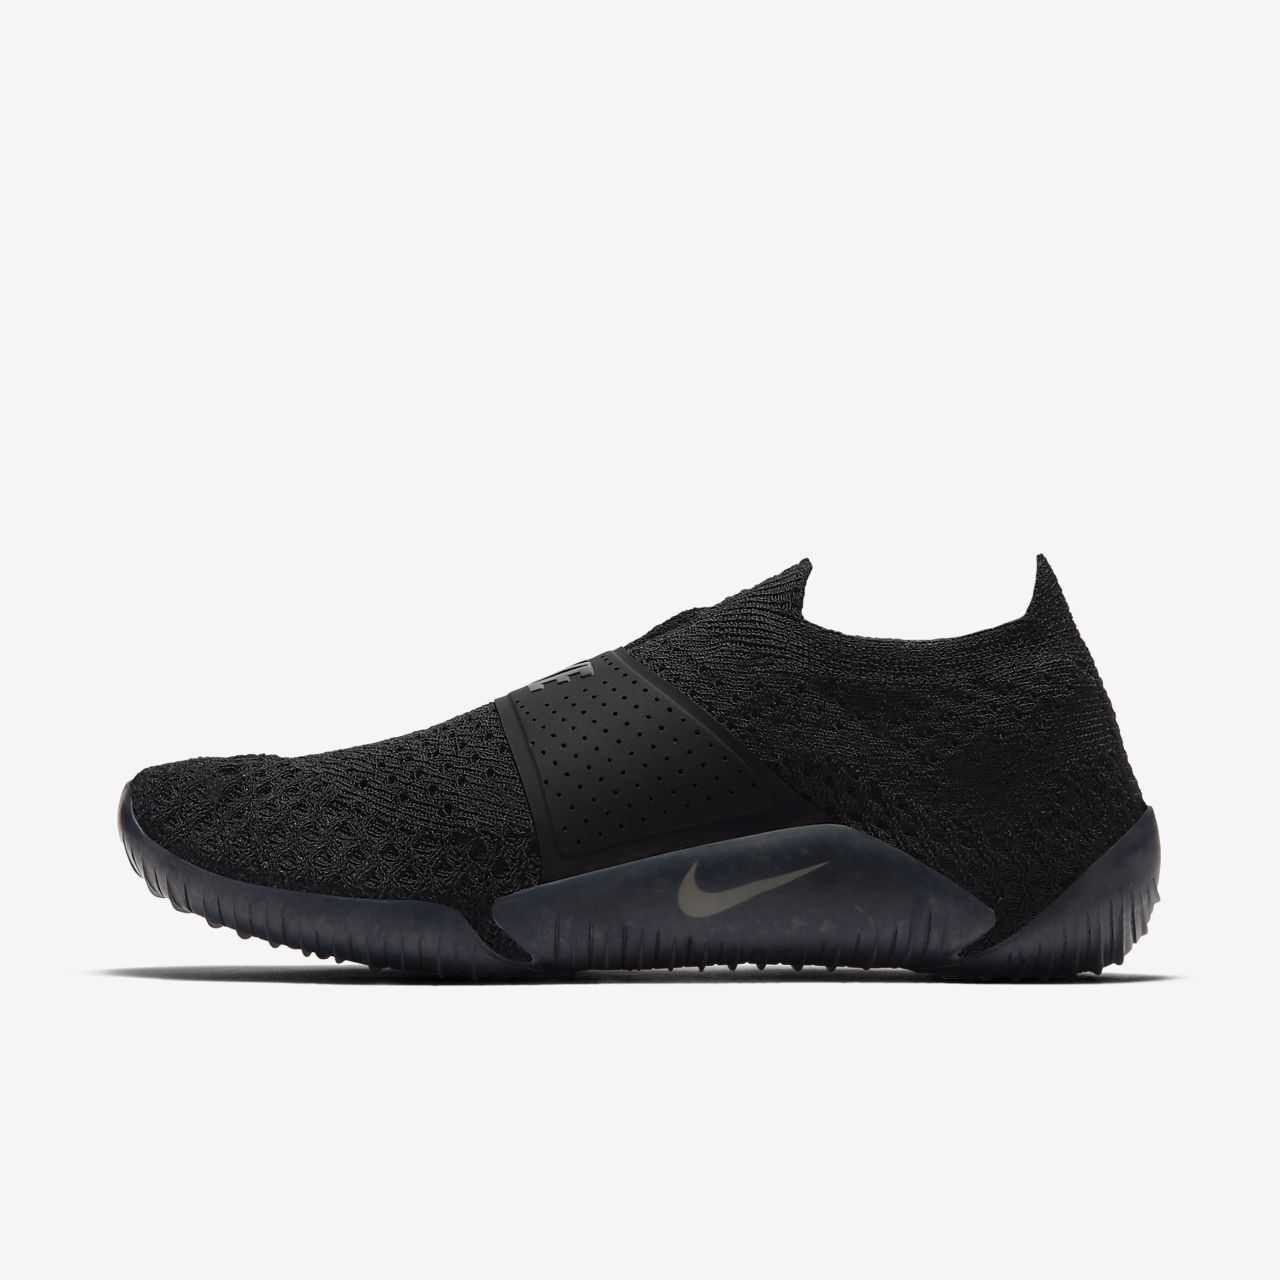 NikeLab Femme 3 pour City CA Knife Flyknit Chaussure dxwYzCUqd